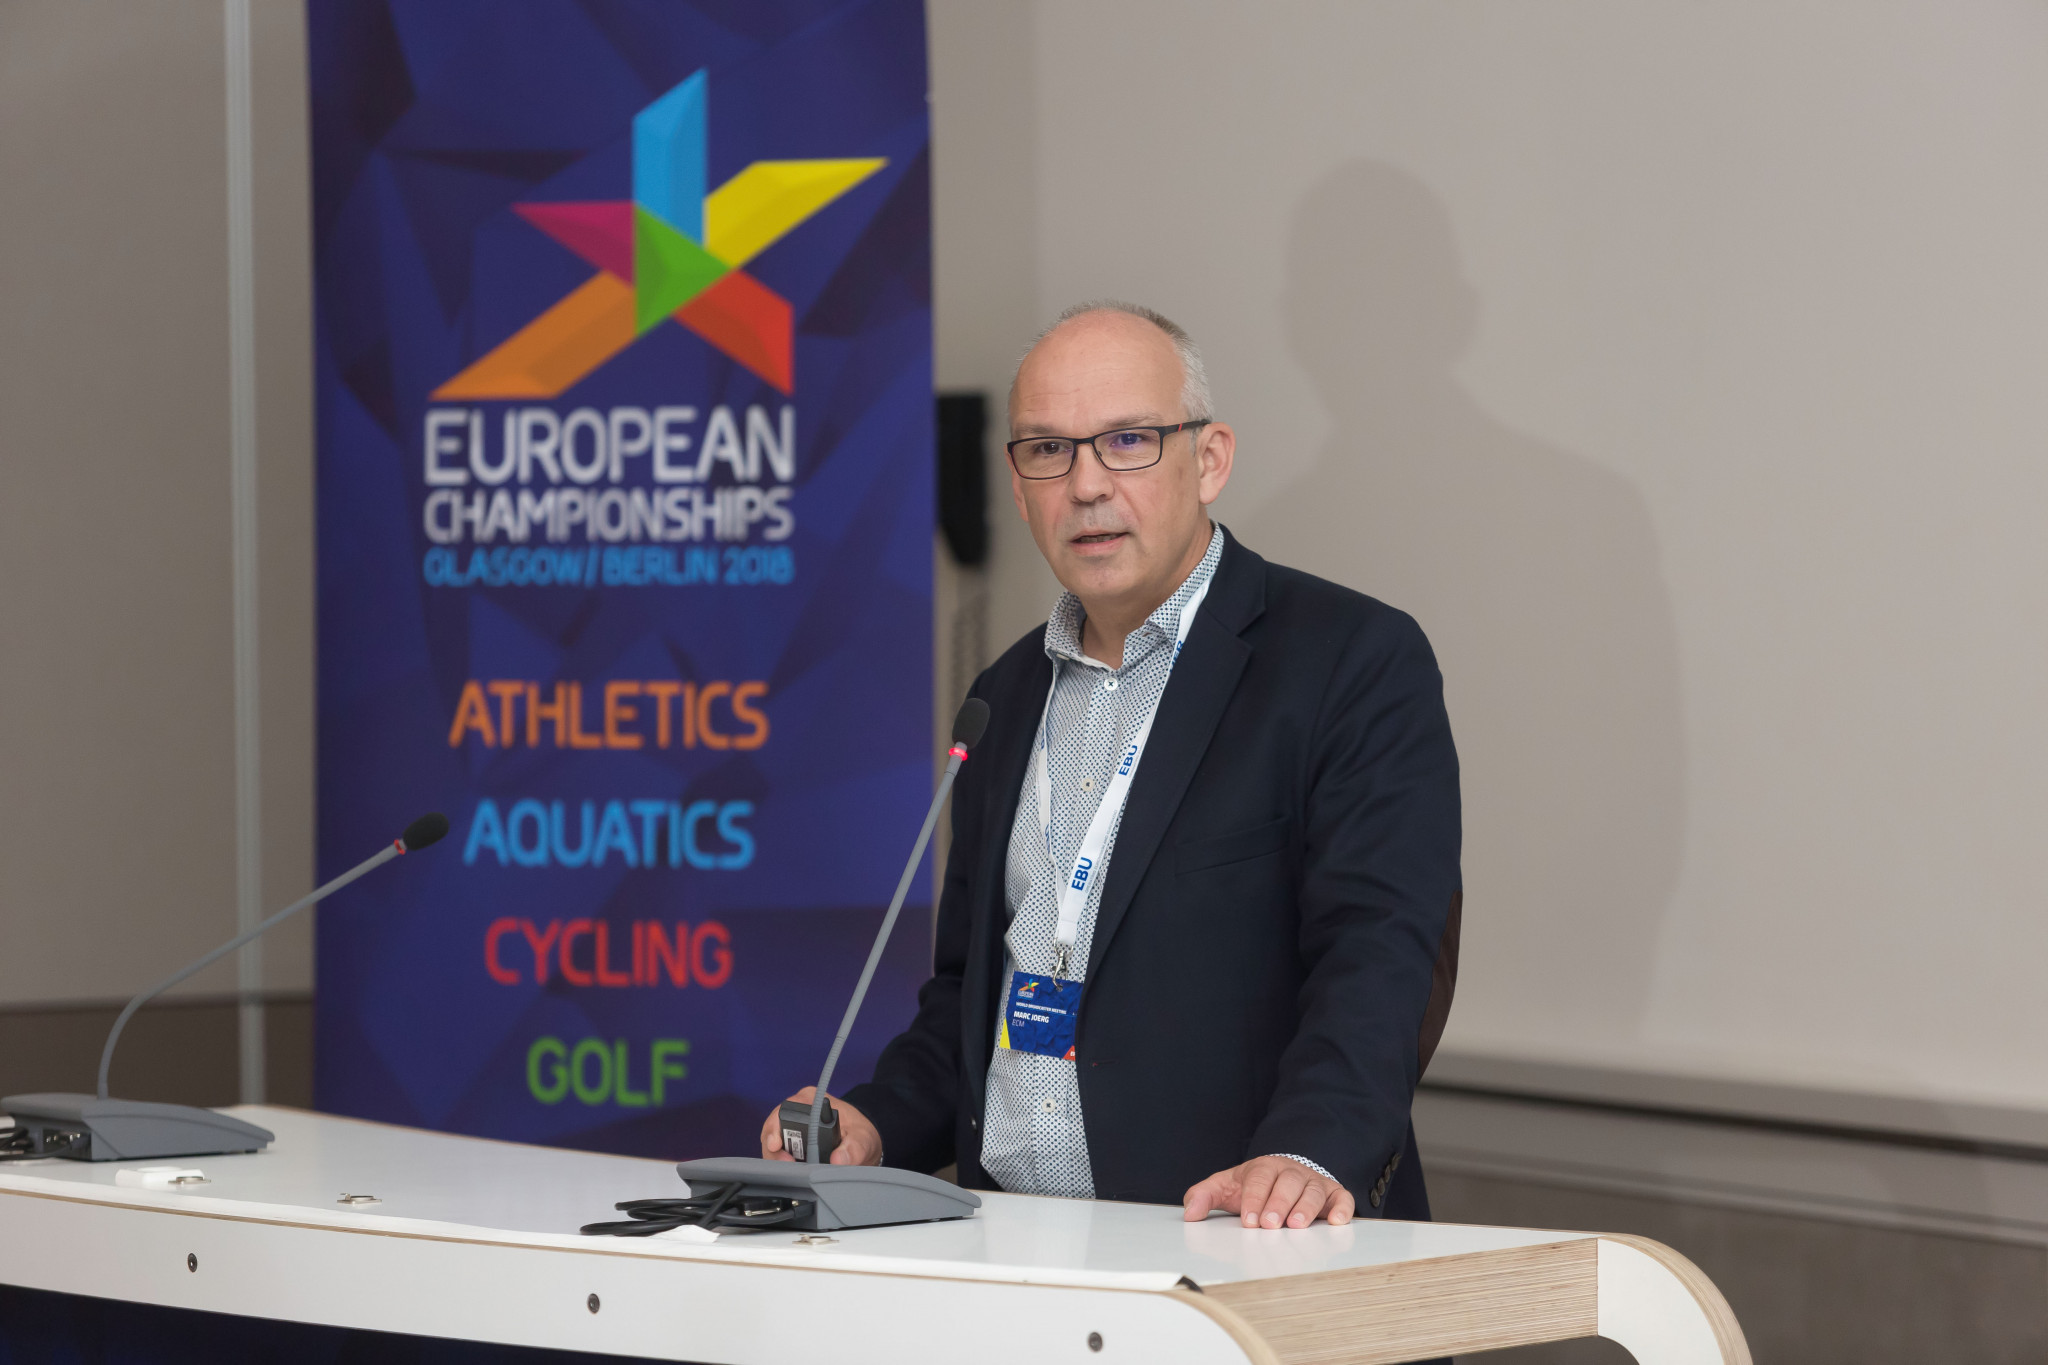 Marc Jörg, co-developer of the new multi-sport European Championships format, has had extensive marketing experience within UEFA and the EBU ©European Championships